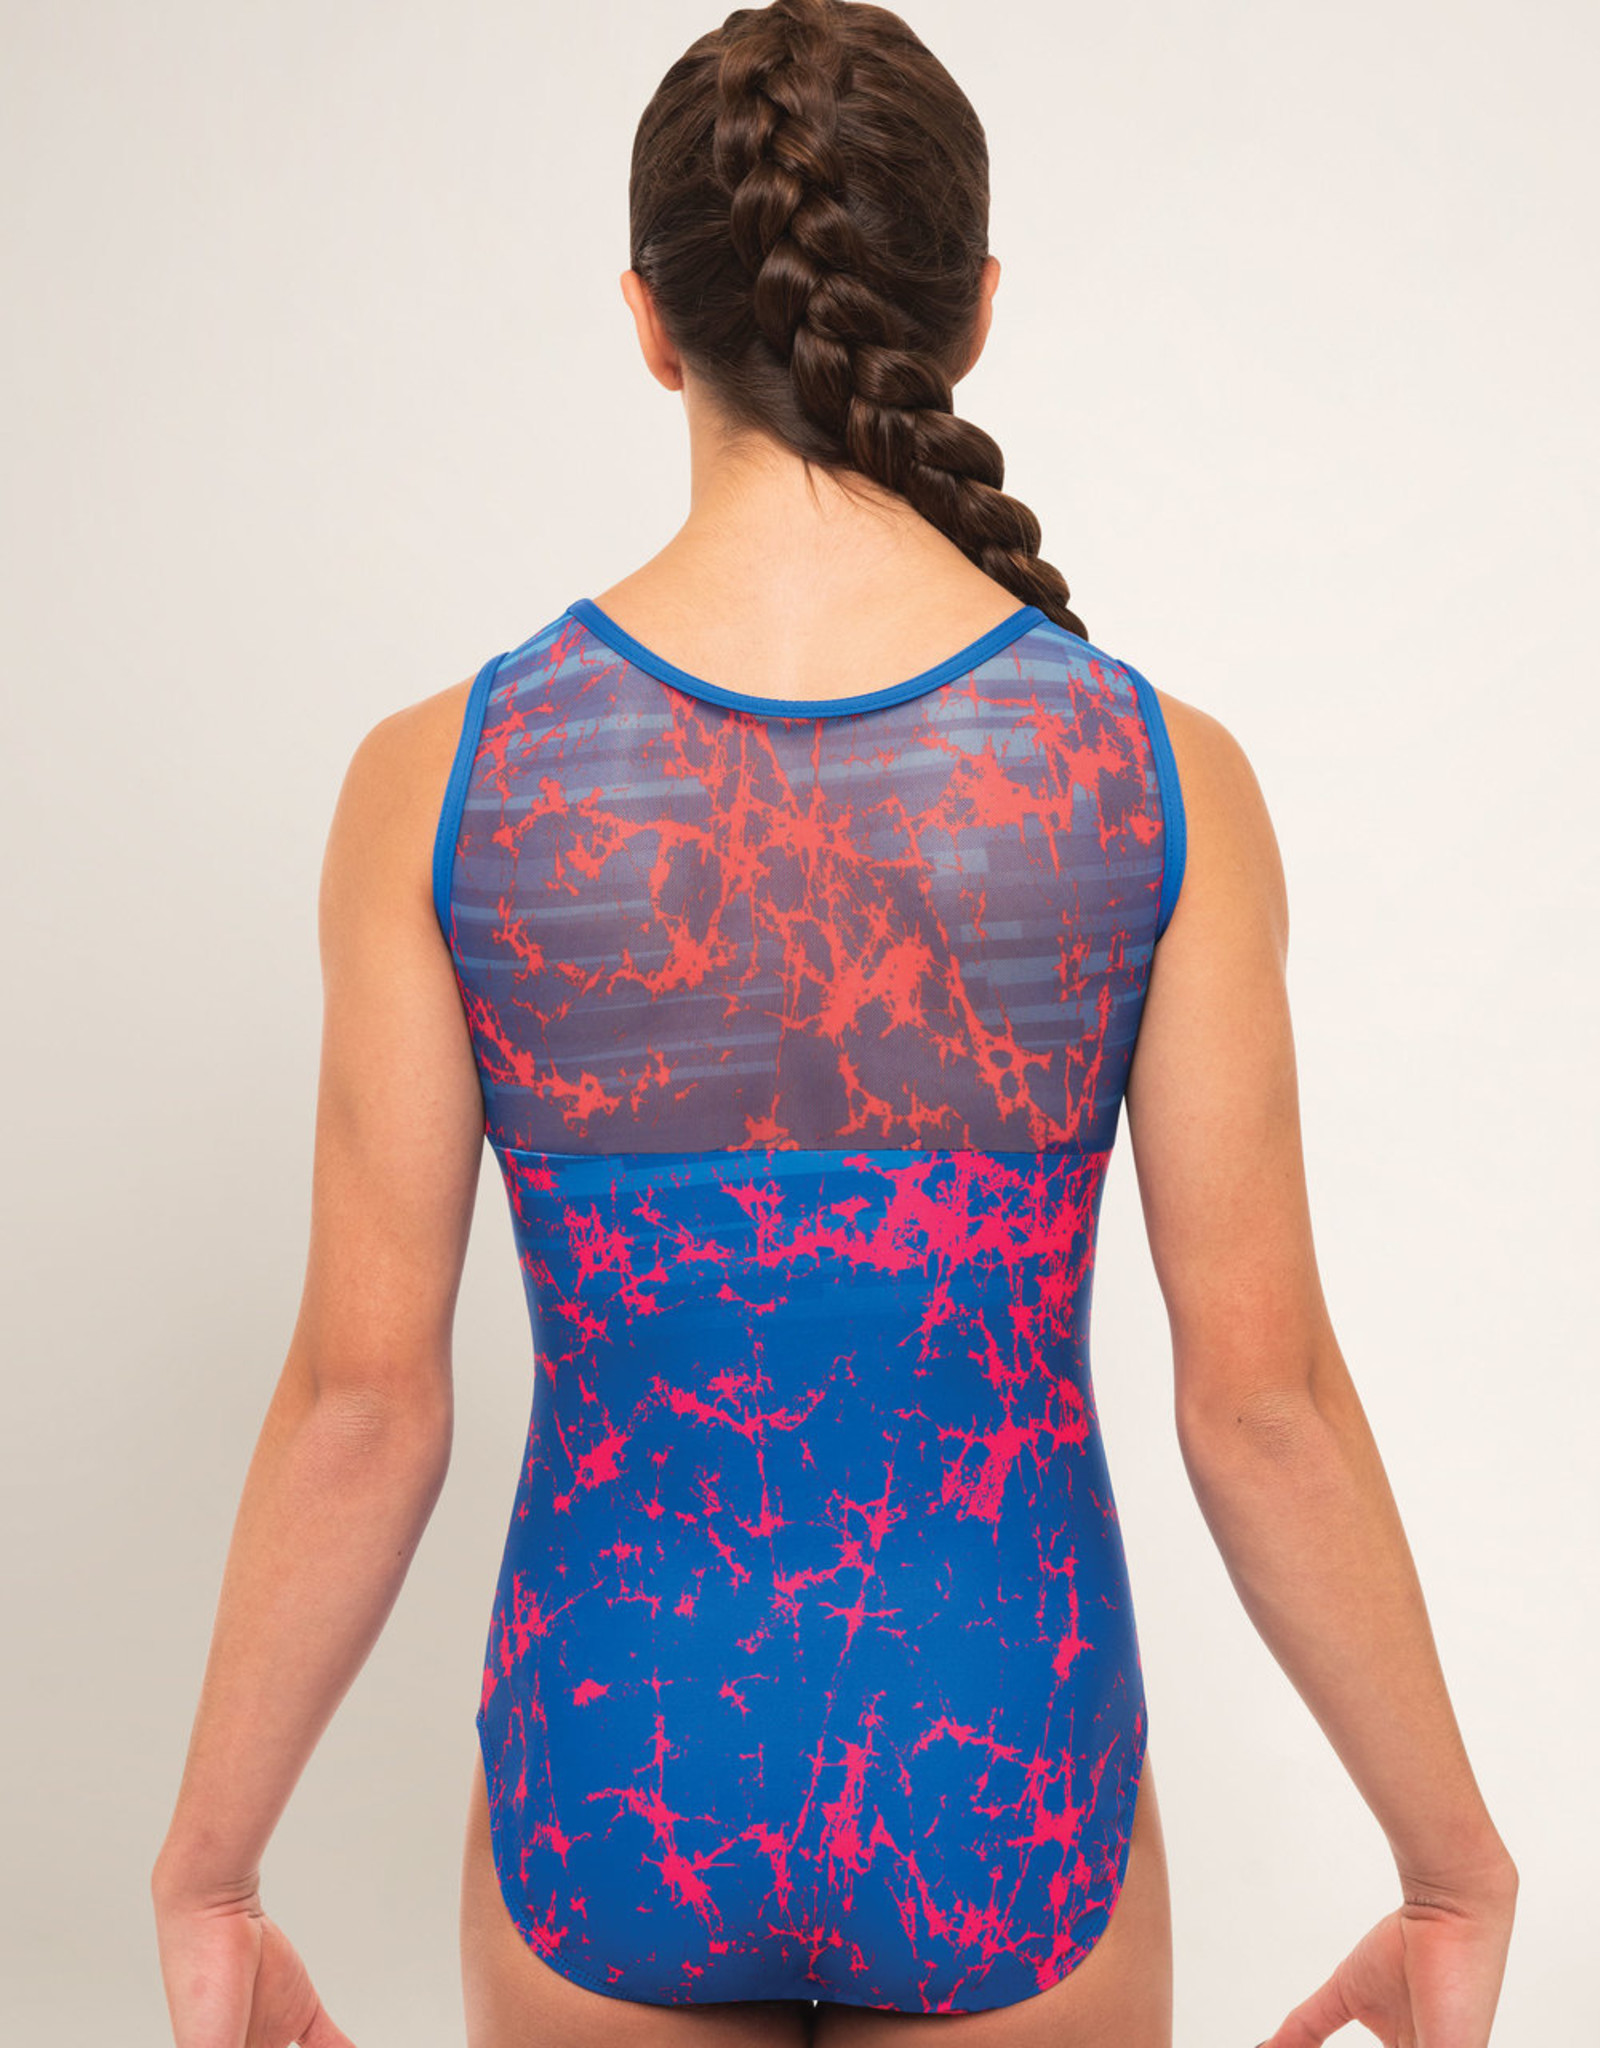 MOTIONWEAR SIGNATURE MESH TOP LEOTARD (1143)